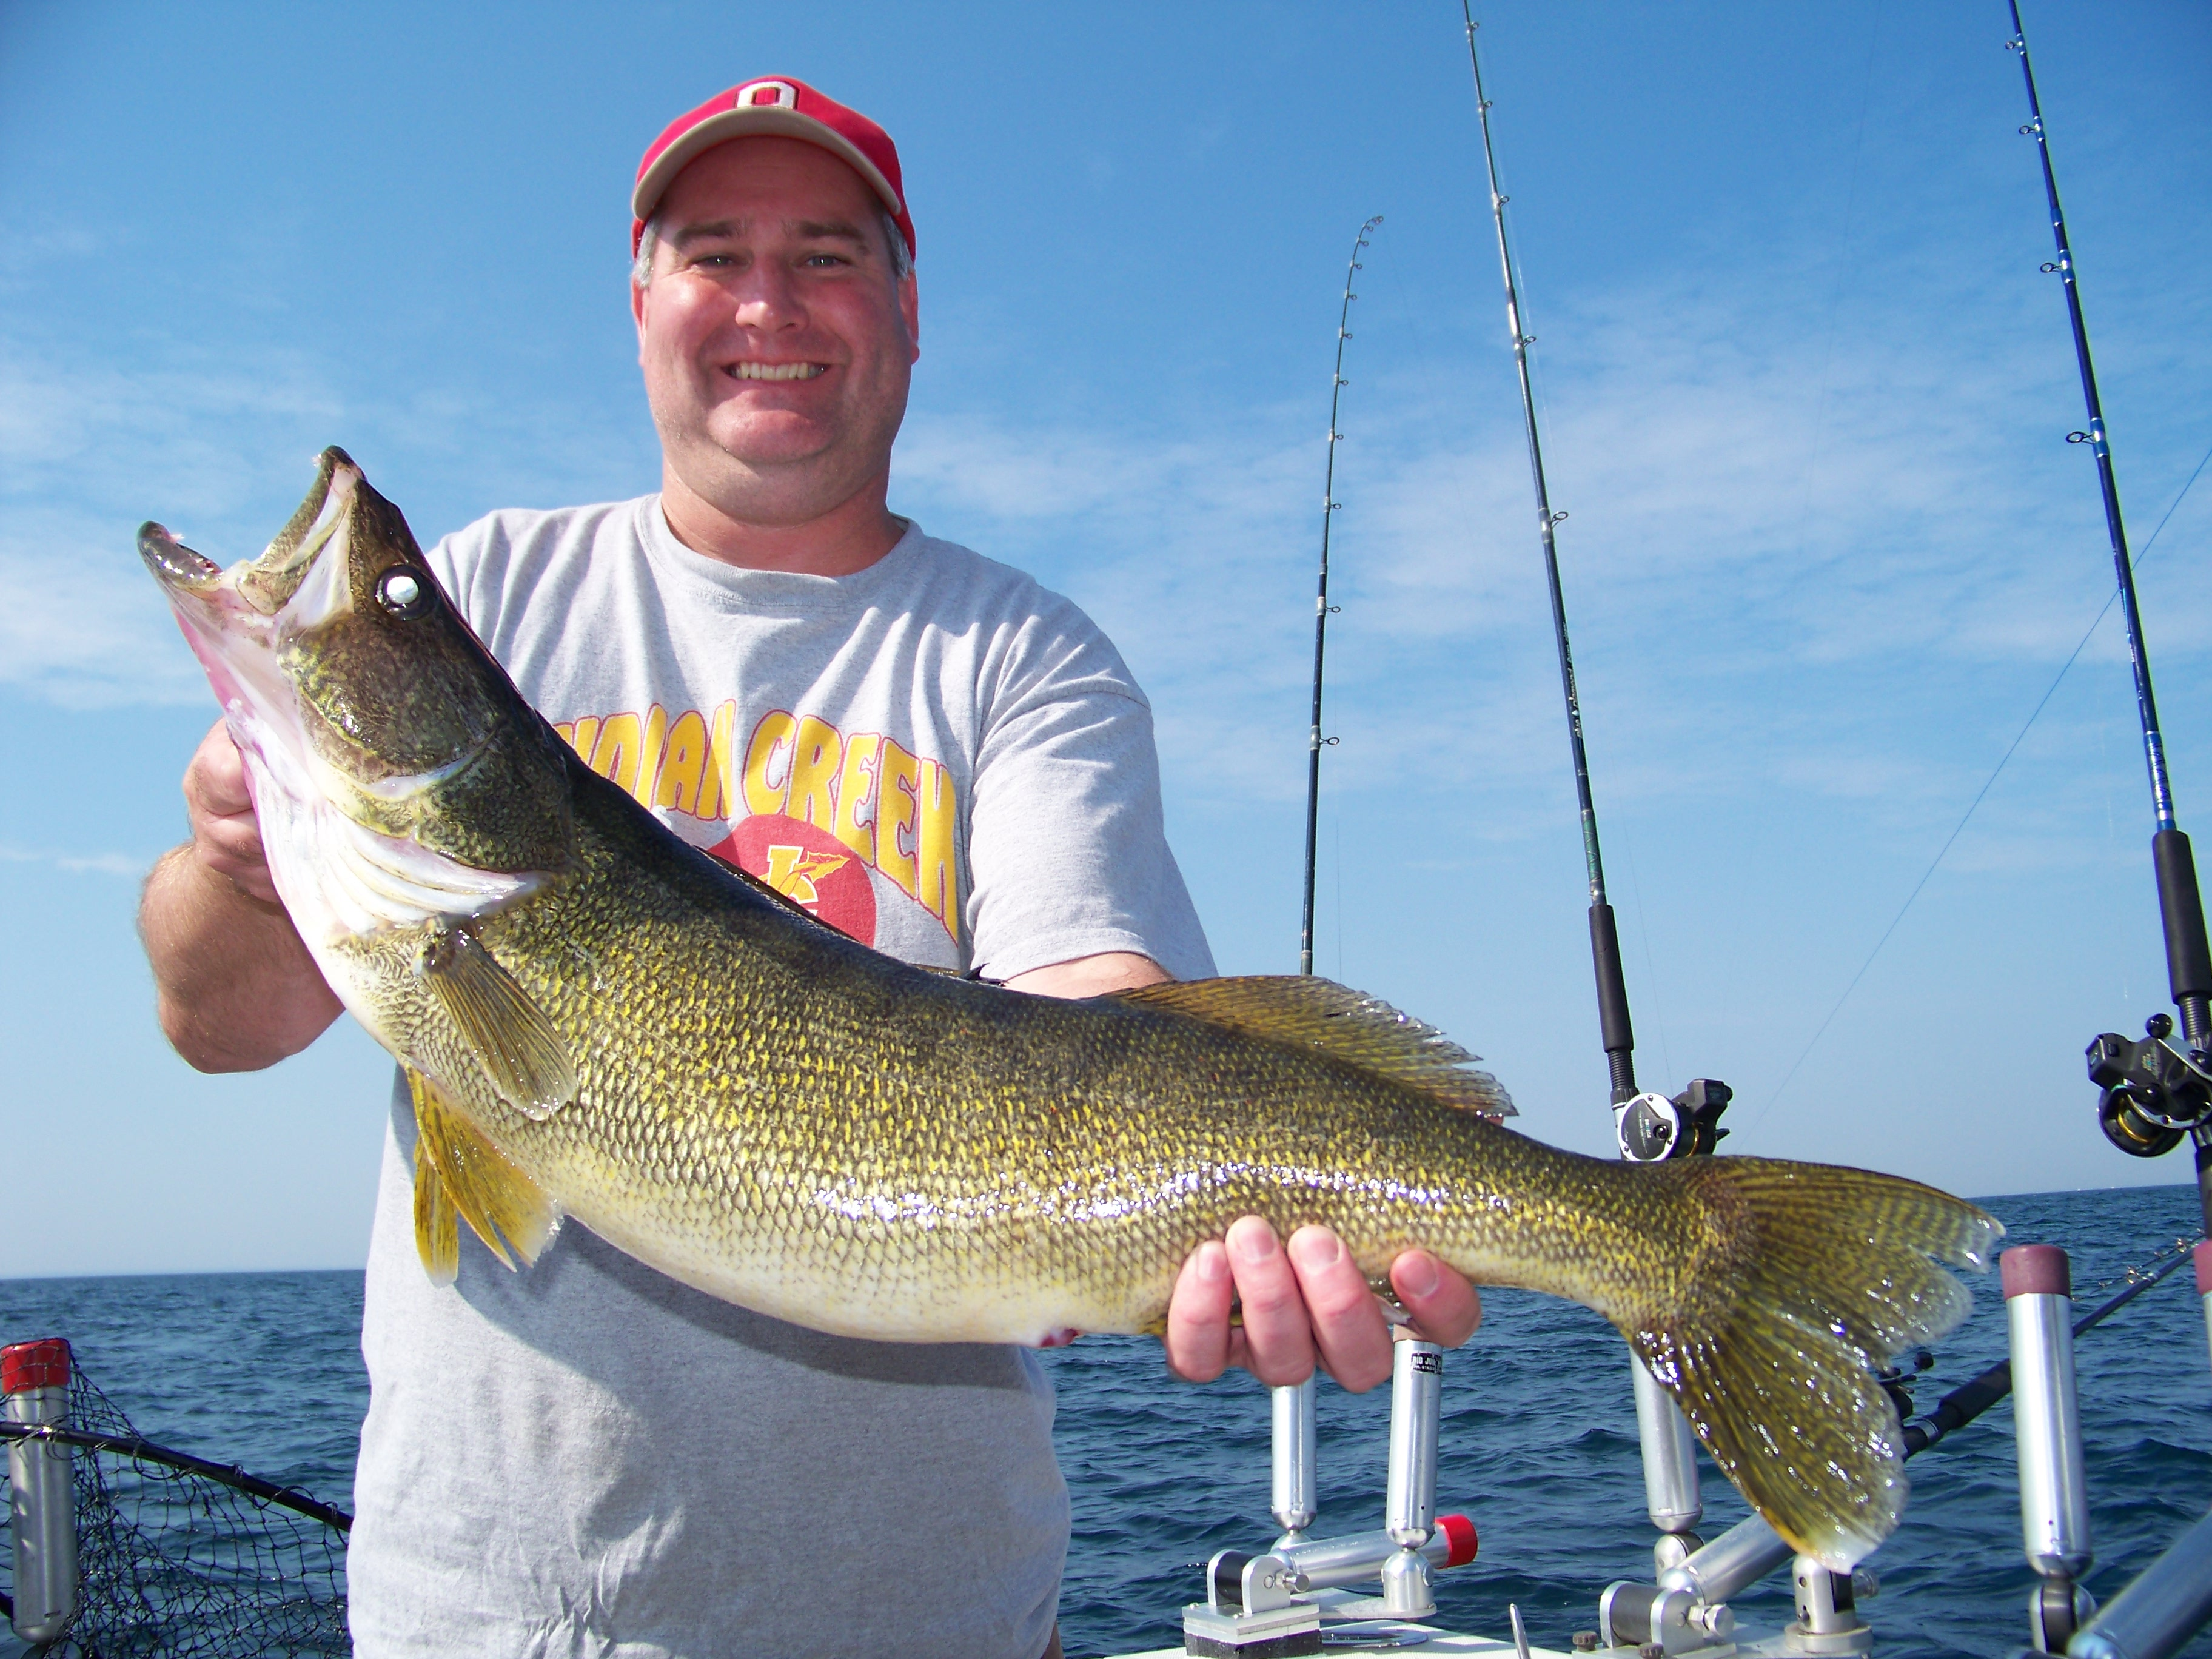 Perch fishing lake erie all the best fish in 2018 for Lake erie perch fishing report central basin